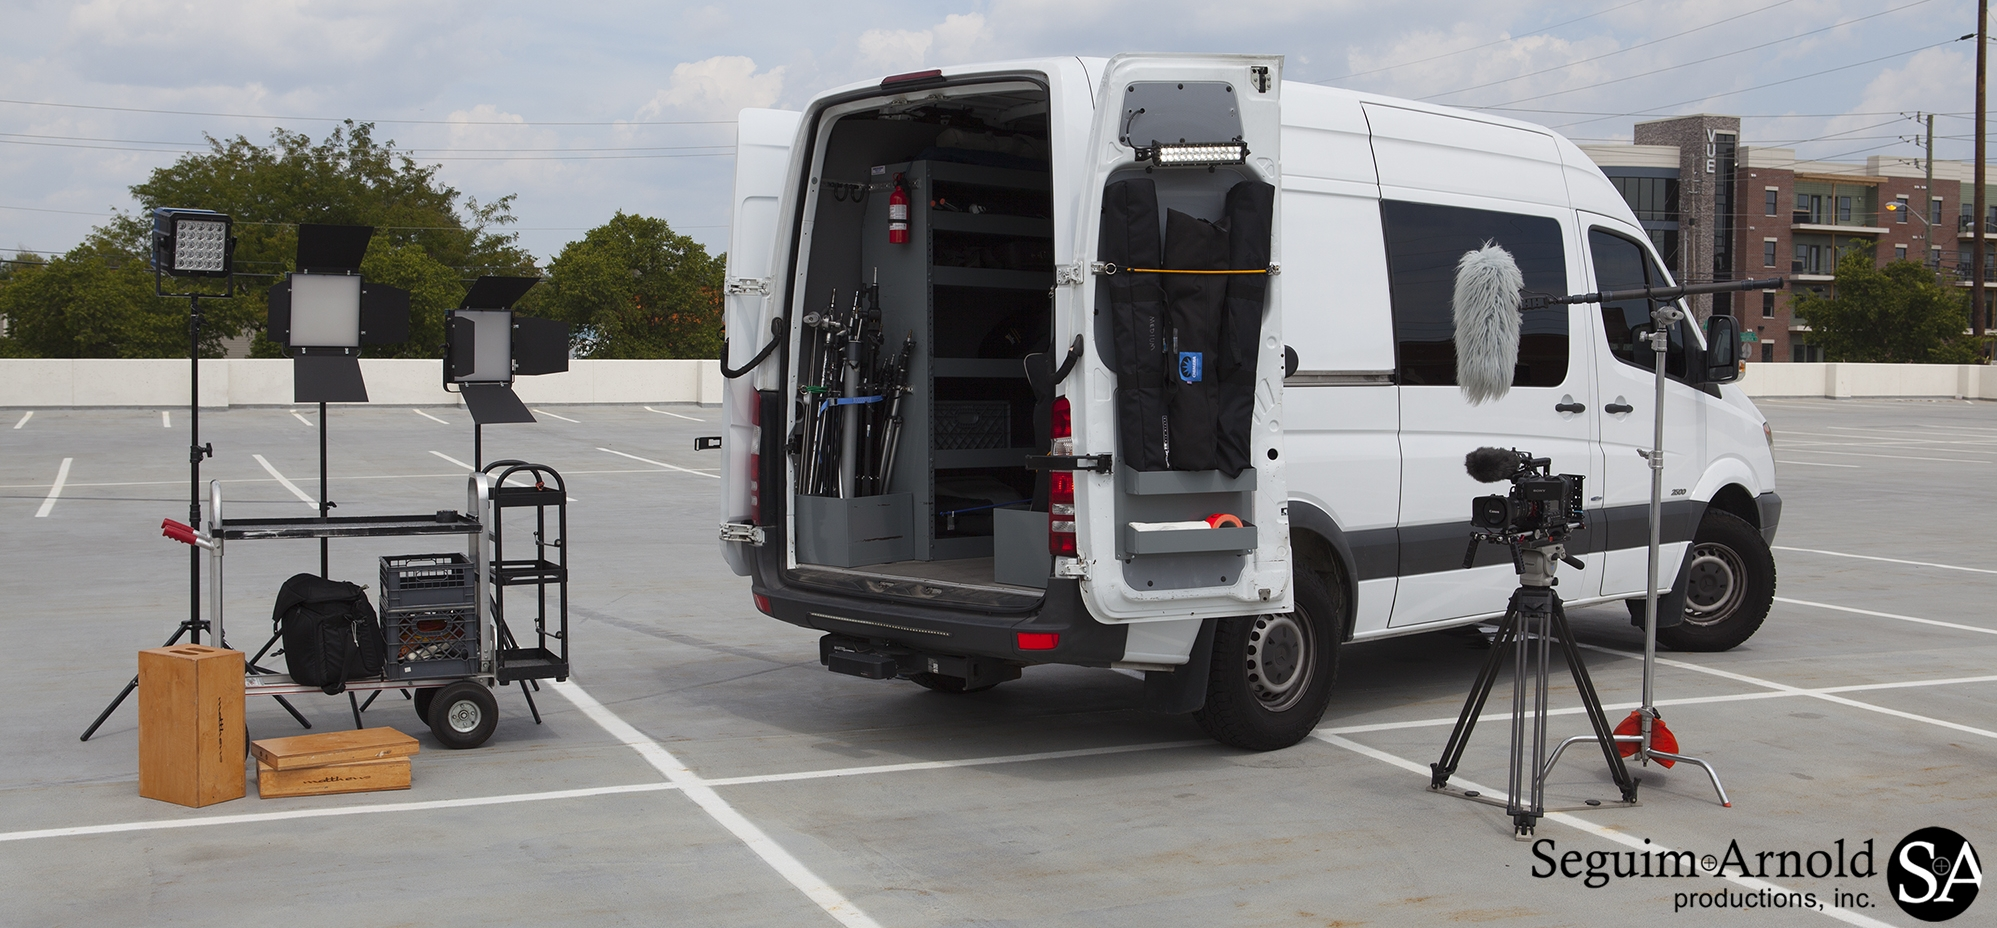 Our Sprinter Production Van has everything we need for corporate and network news. In fact, it is optimized for live network news with the ability to power all of our LED lights and can charge everything from an iPhone to a camera battery.It also features exterior LED work lights and safety strobes. Plus, with our LiveU uplink unit, we can broadcast anywhere there is cellular service.